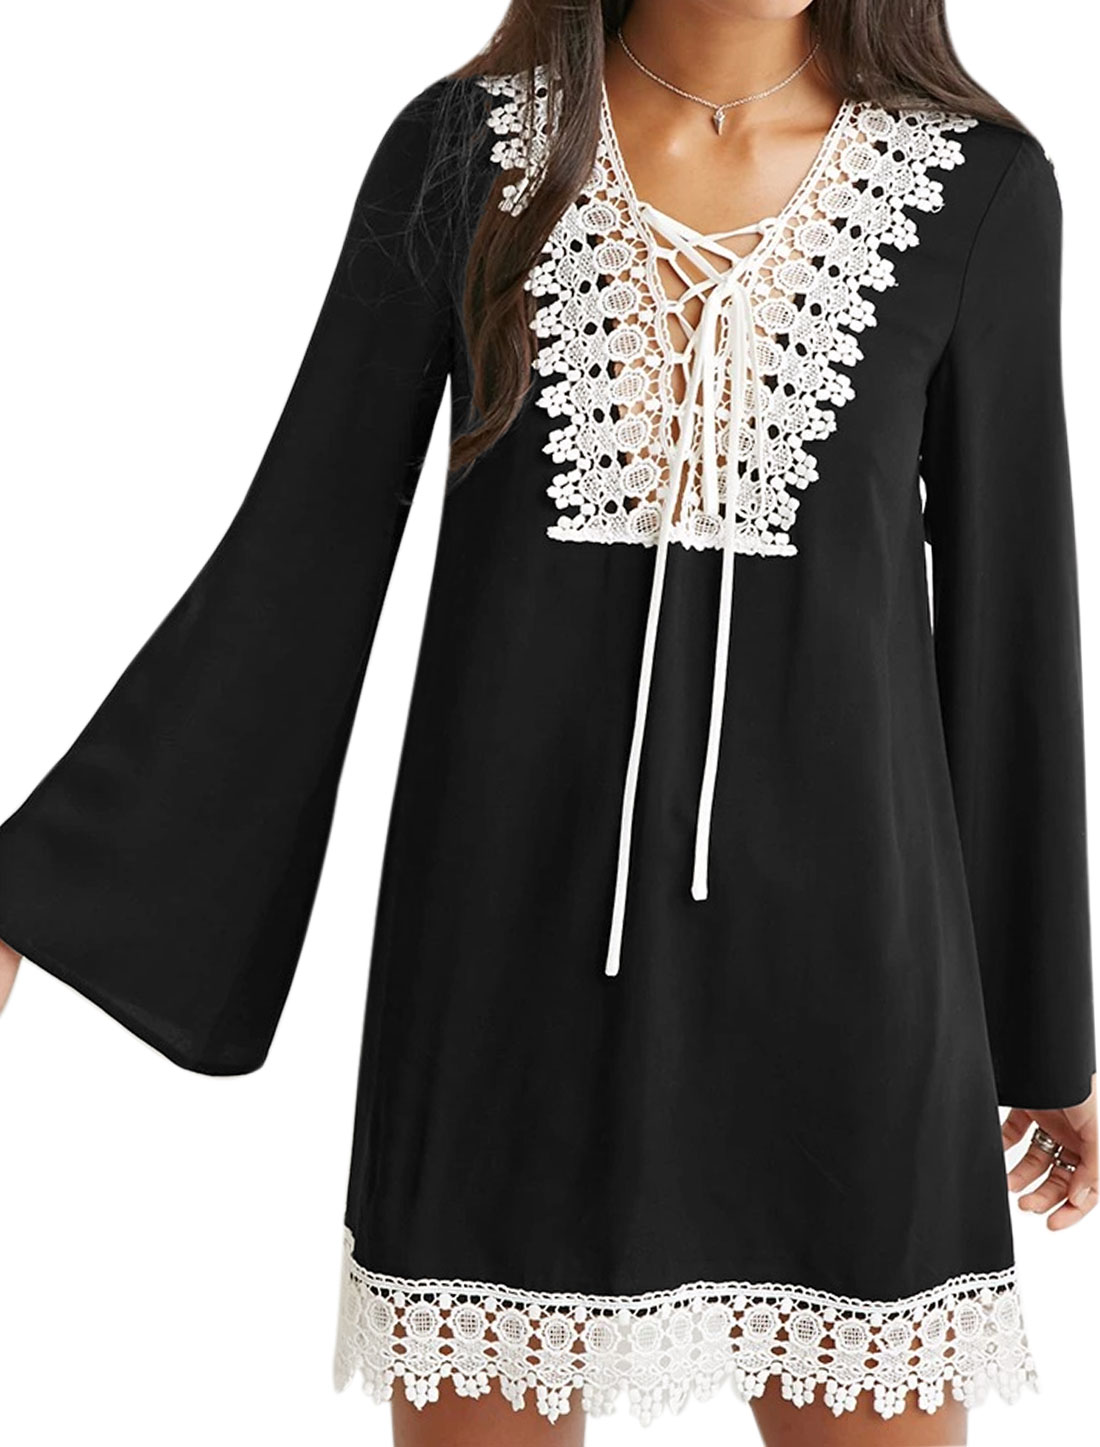 Lady Deep V Neck Bell Sleeves Lace Up Front Paneled Tunic Dress Black S